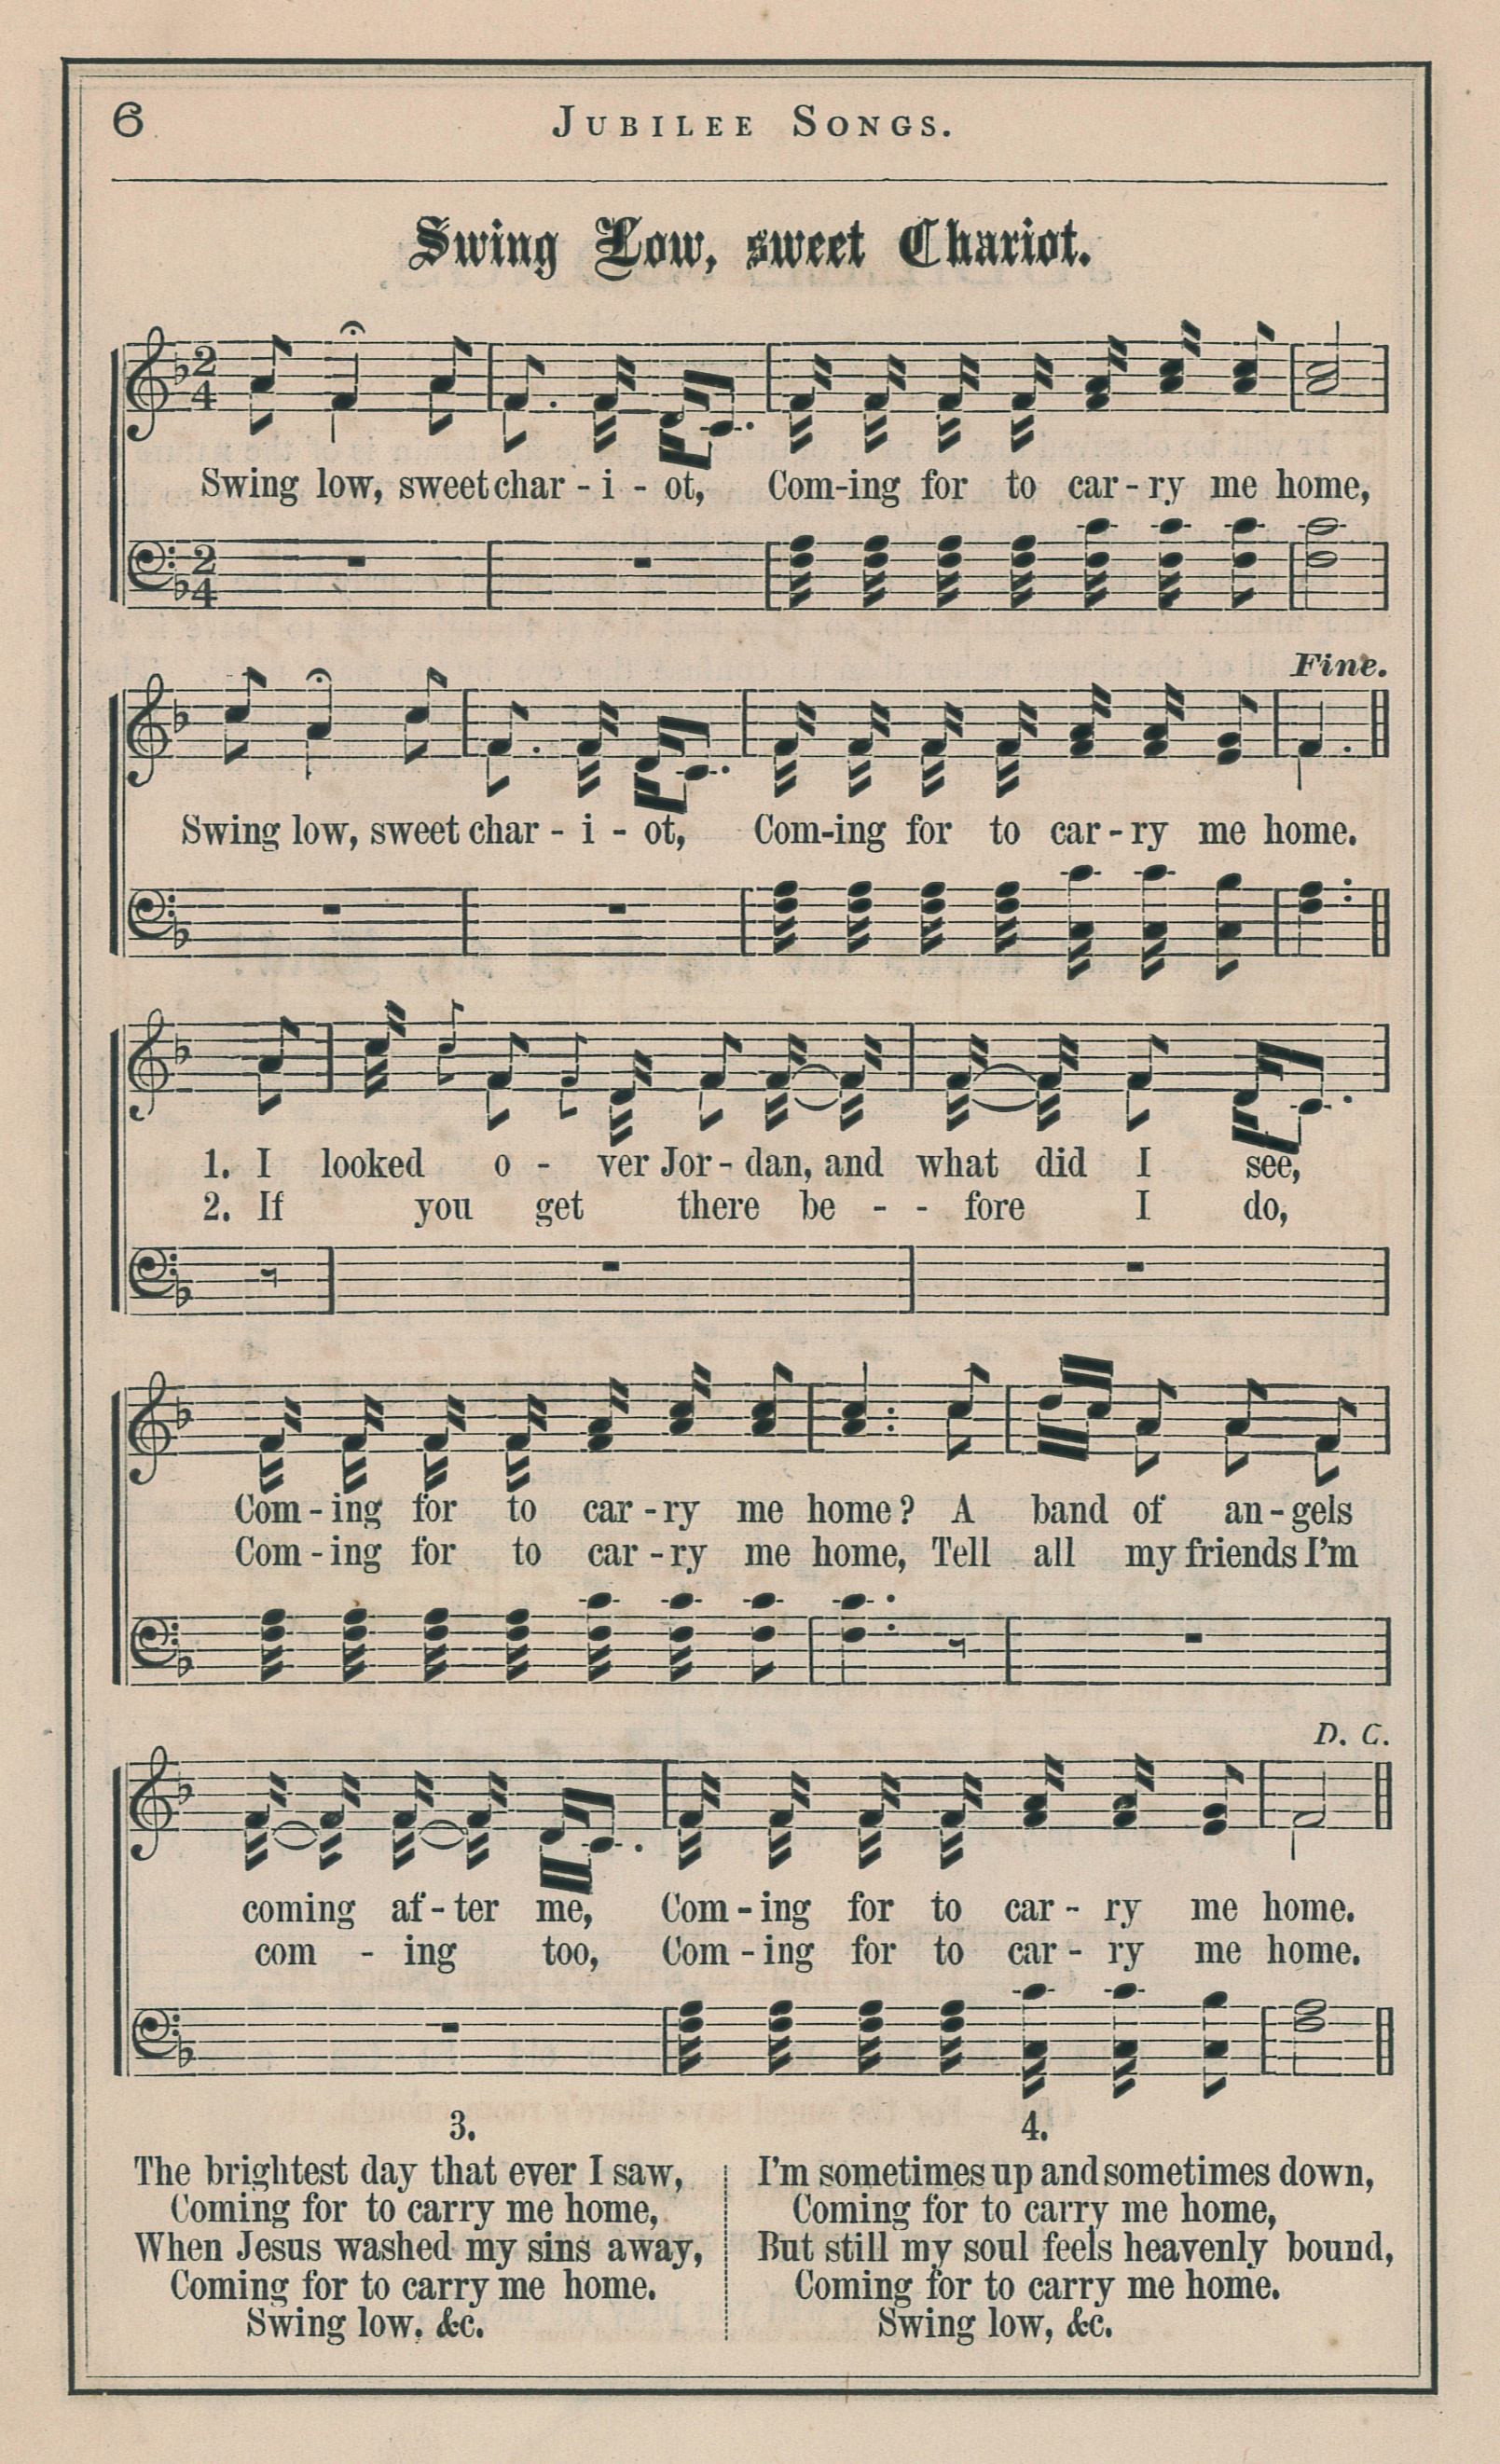 Fig. 1.   Jubilee Songs as Sung by the Jubilee Singers of Fisk University  (NY: Biglow & Main, 1872).